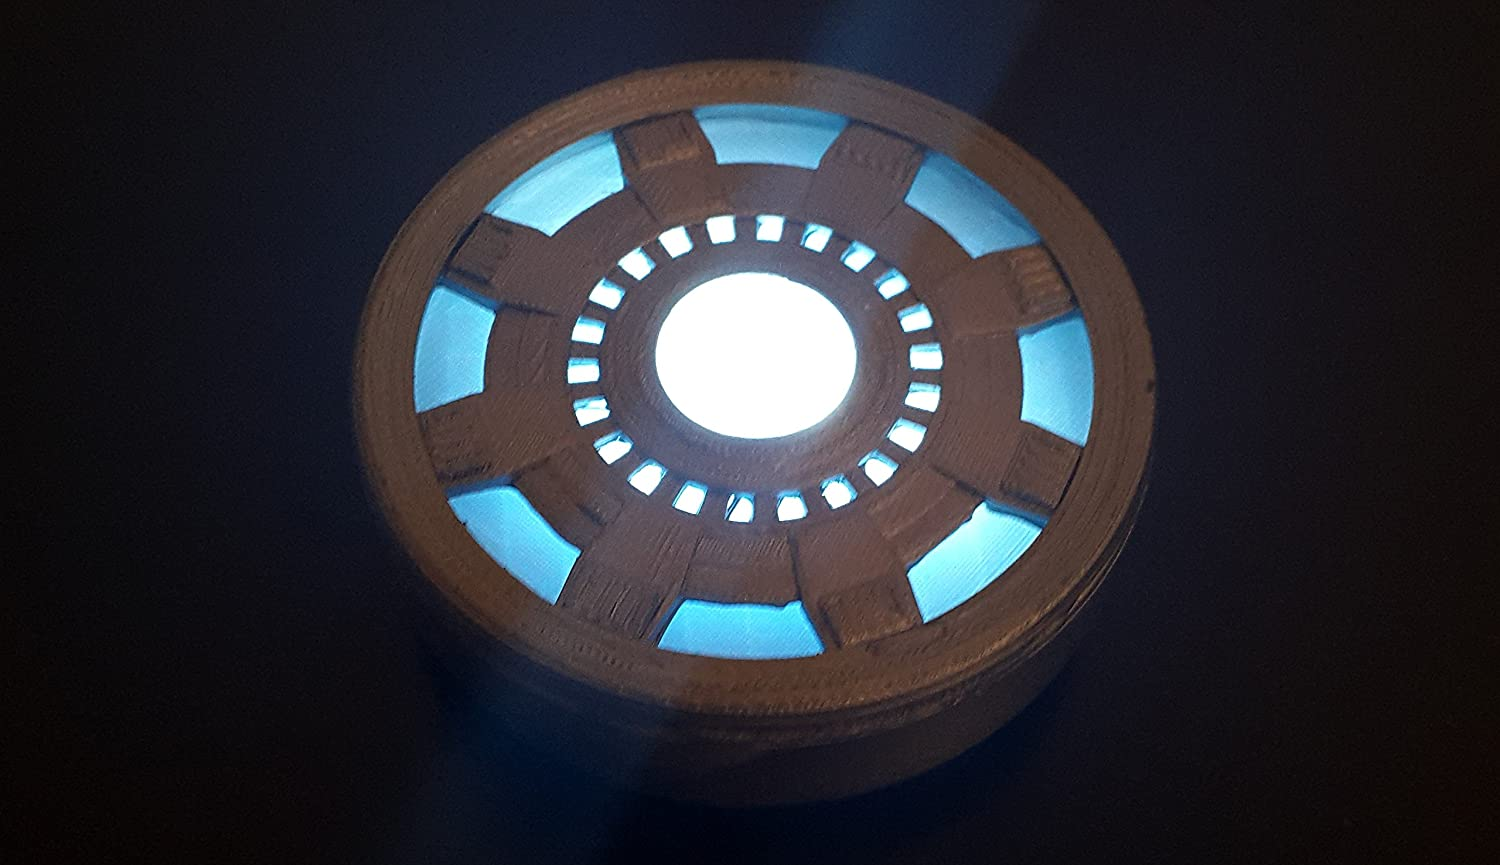 Iron Man Arc Reactor Replica   MK2 Wearable For Costume And Fancy Dress  ...: Amazon.co.uk: Toys U0026 Games